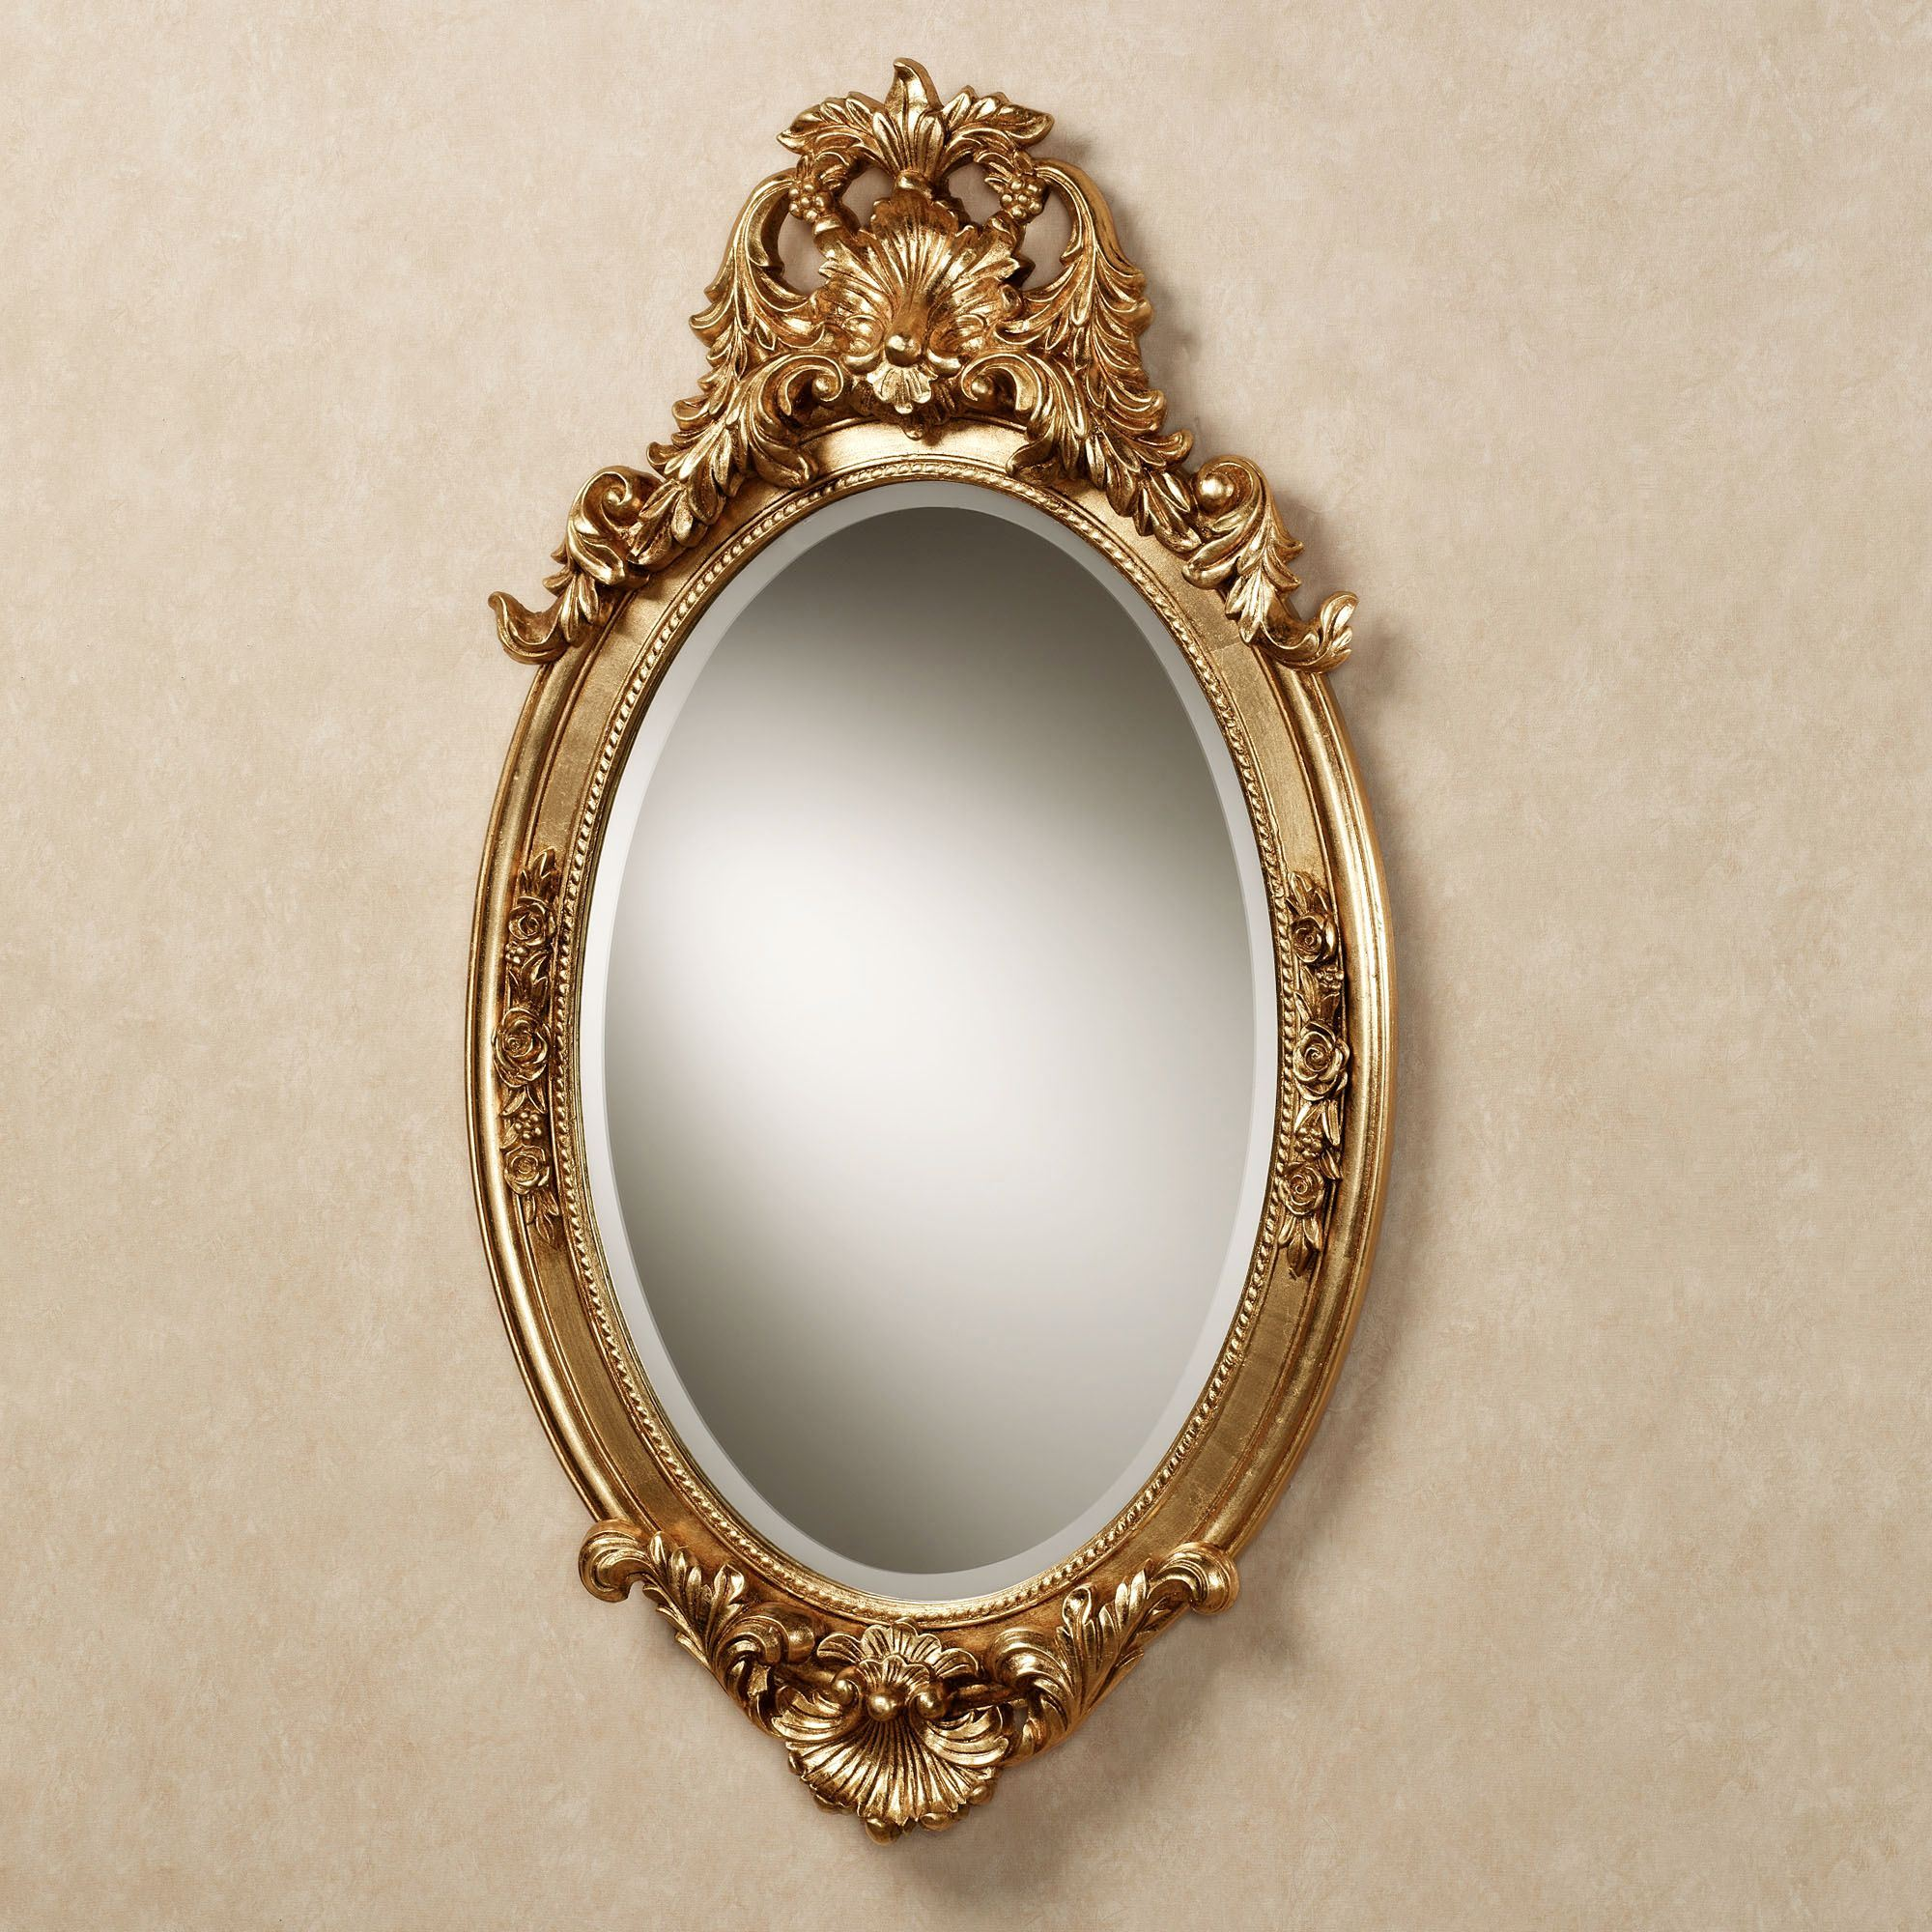 Hallandale acanthus leaf oval wall mirror for Plastic baroque mirror